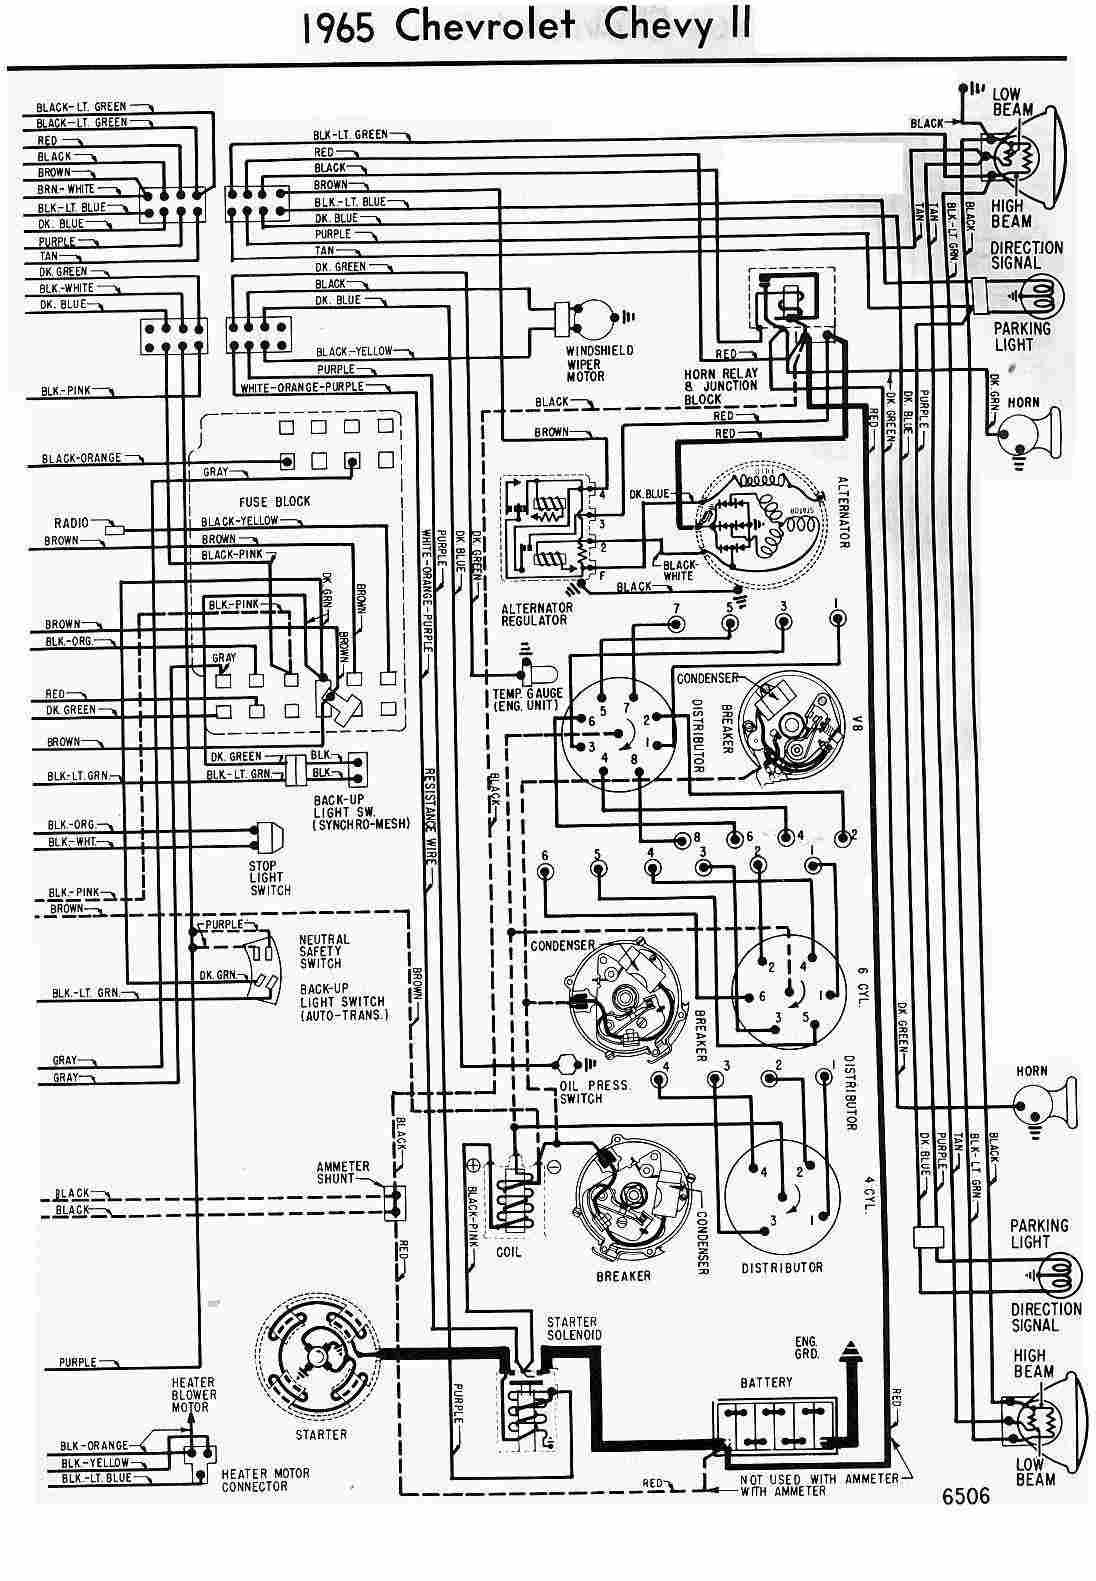 1962 Impala Wiper Motor Wiring Diagram Library 1969 Camaro 59 Chevy Truck Data Diagrams U2022 1967 Chevelle